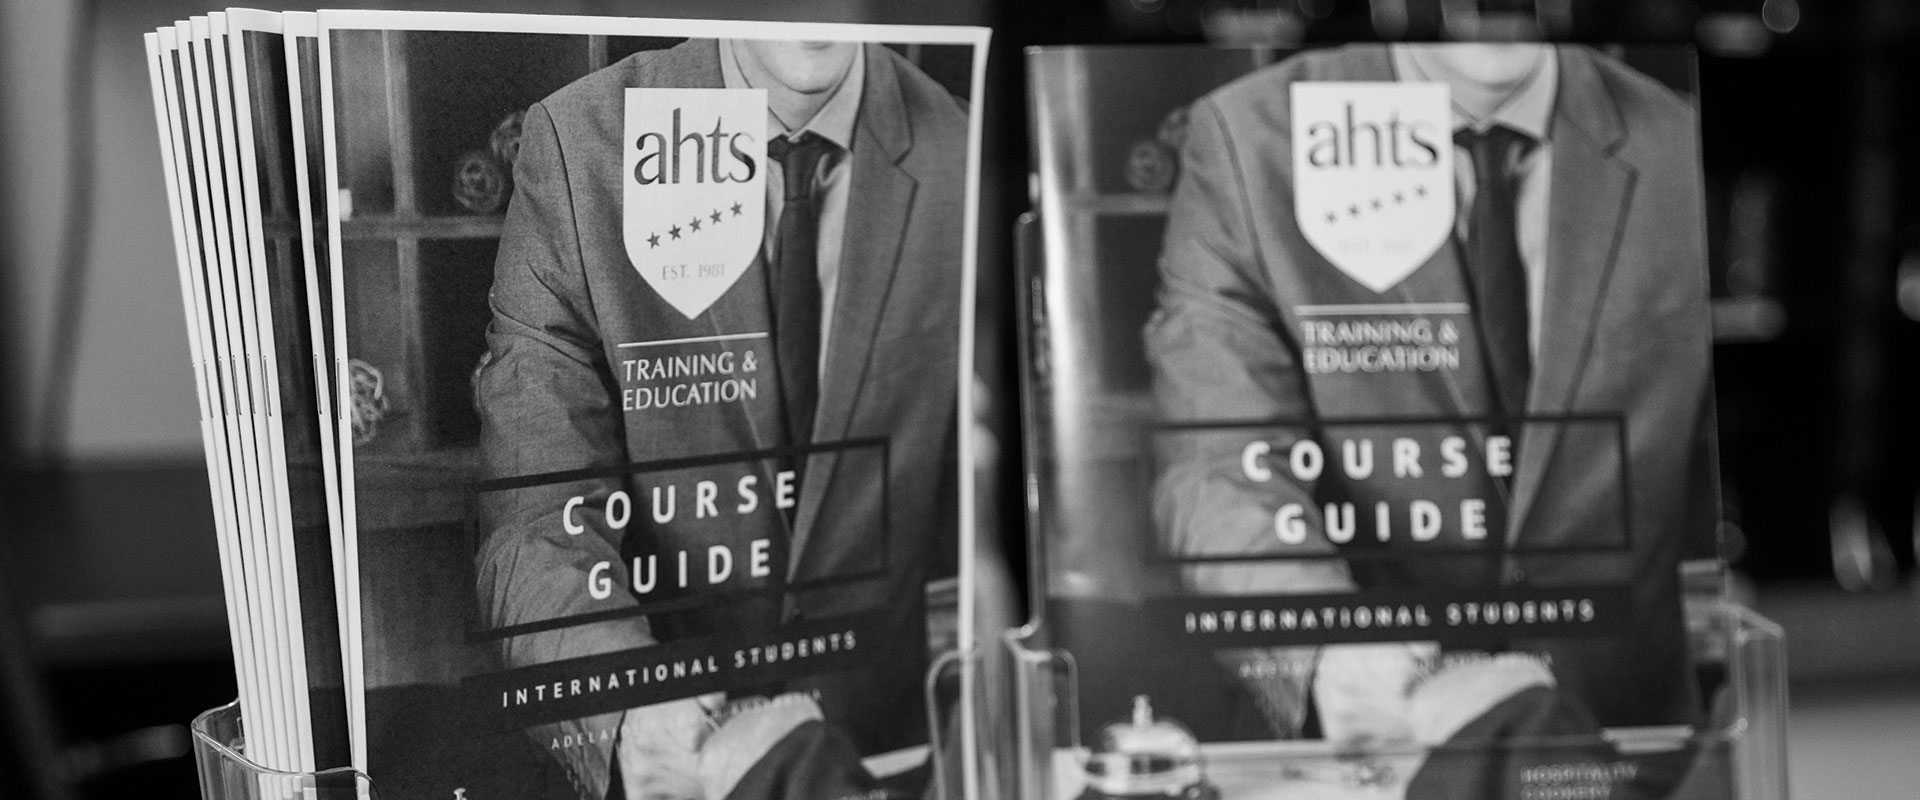 YOUR FUTURE IS IN GOOD HANDS WITH AHTS